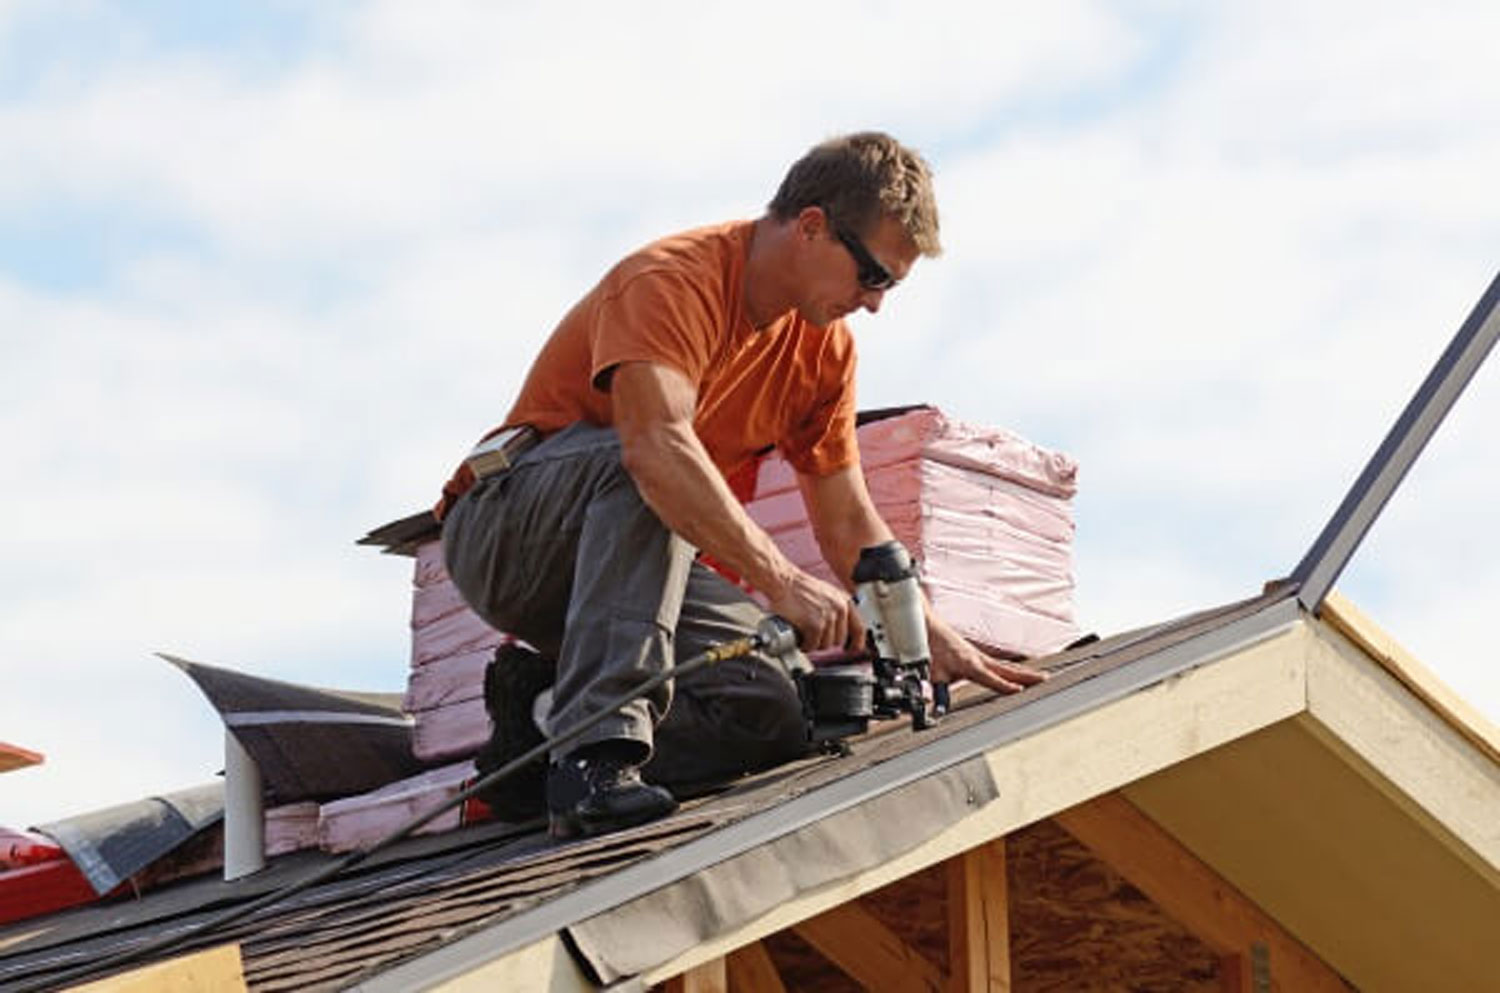 South Carolina Workers' Compensation and Pain and Suffering Damages